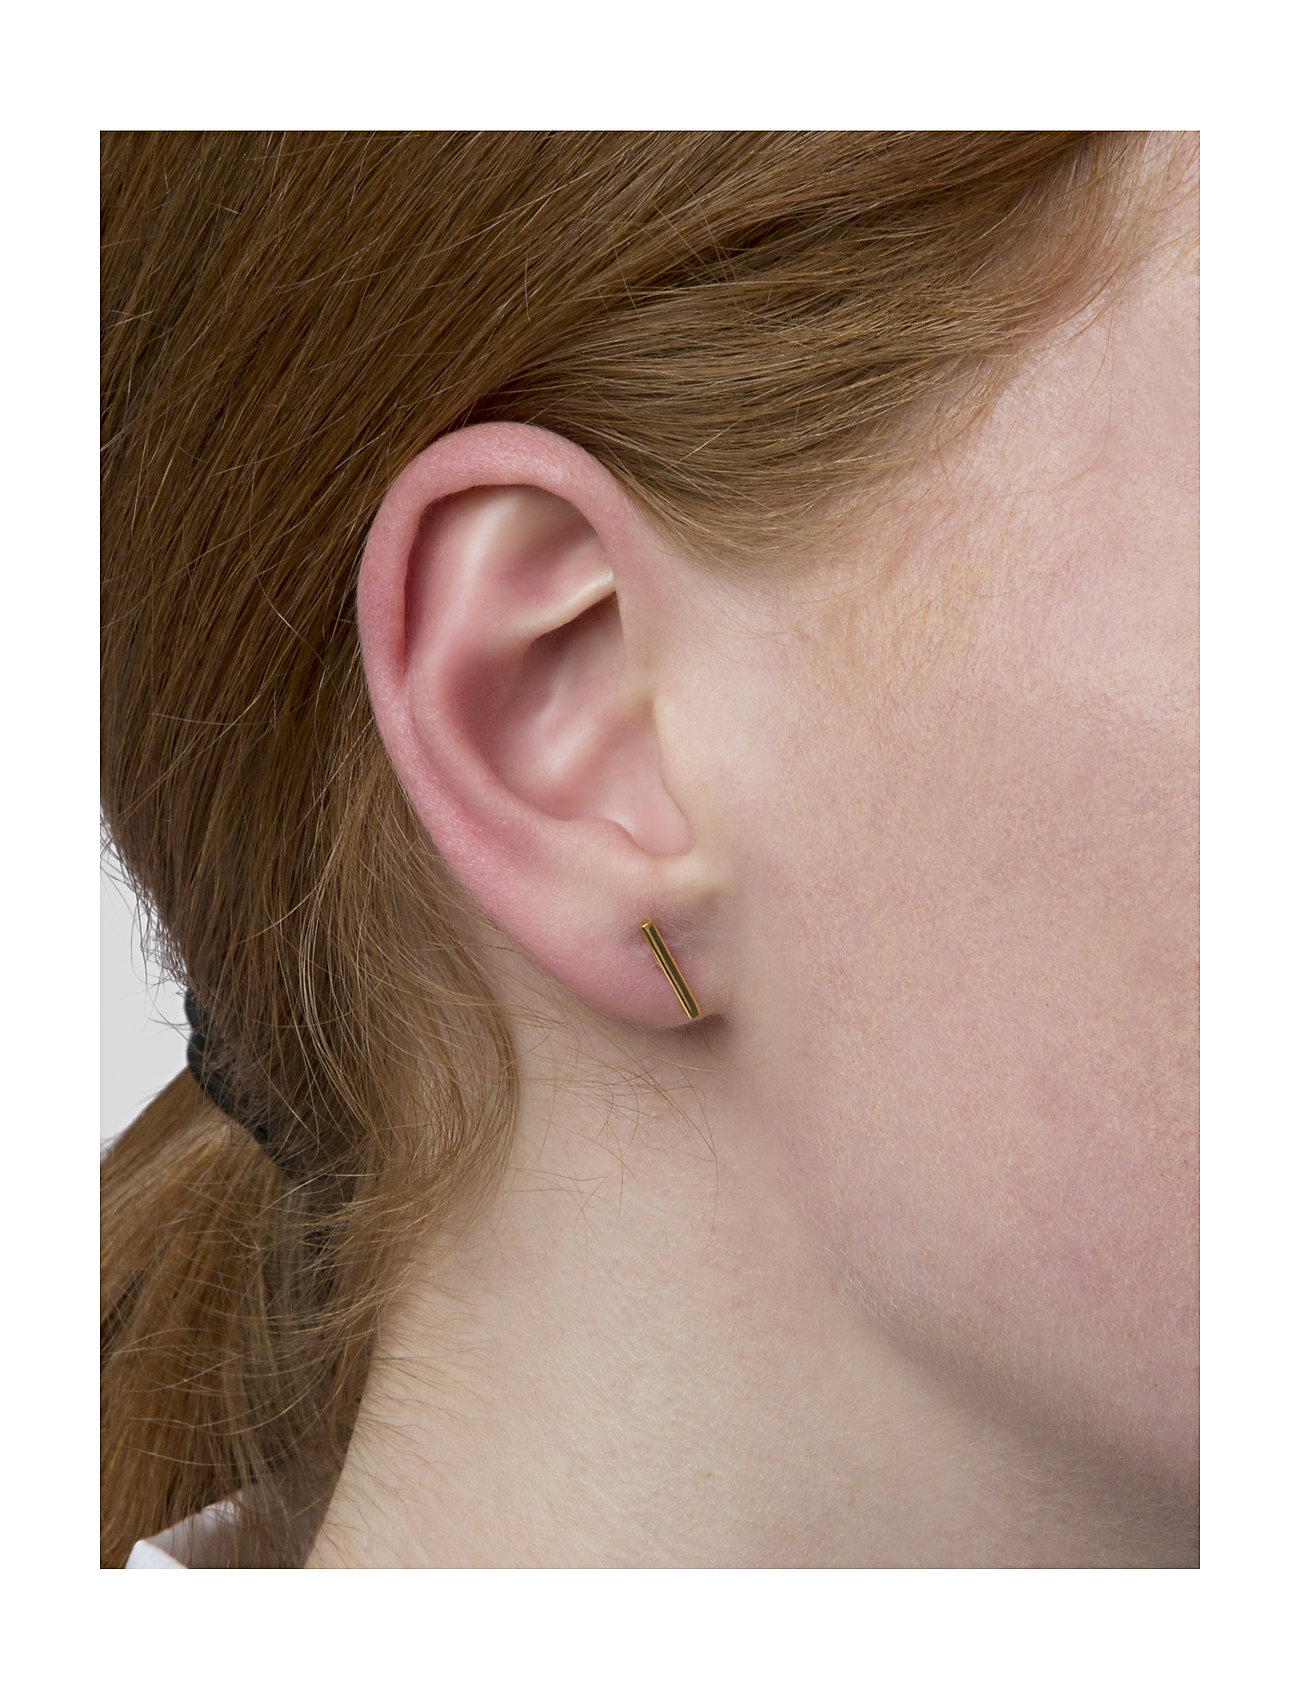 Syster P - Strict Plain Bar Earrings Gold - oorhangers - gold - 1